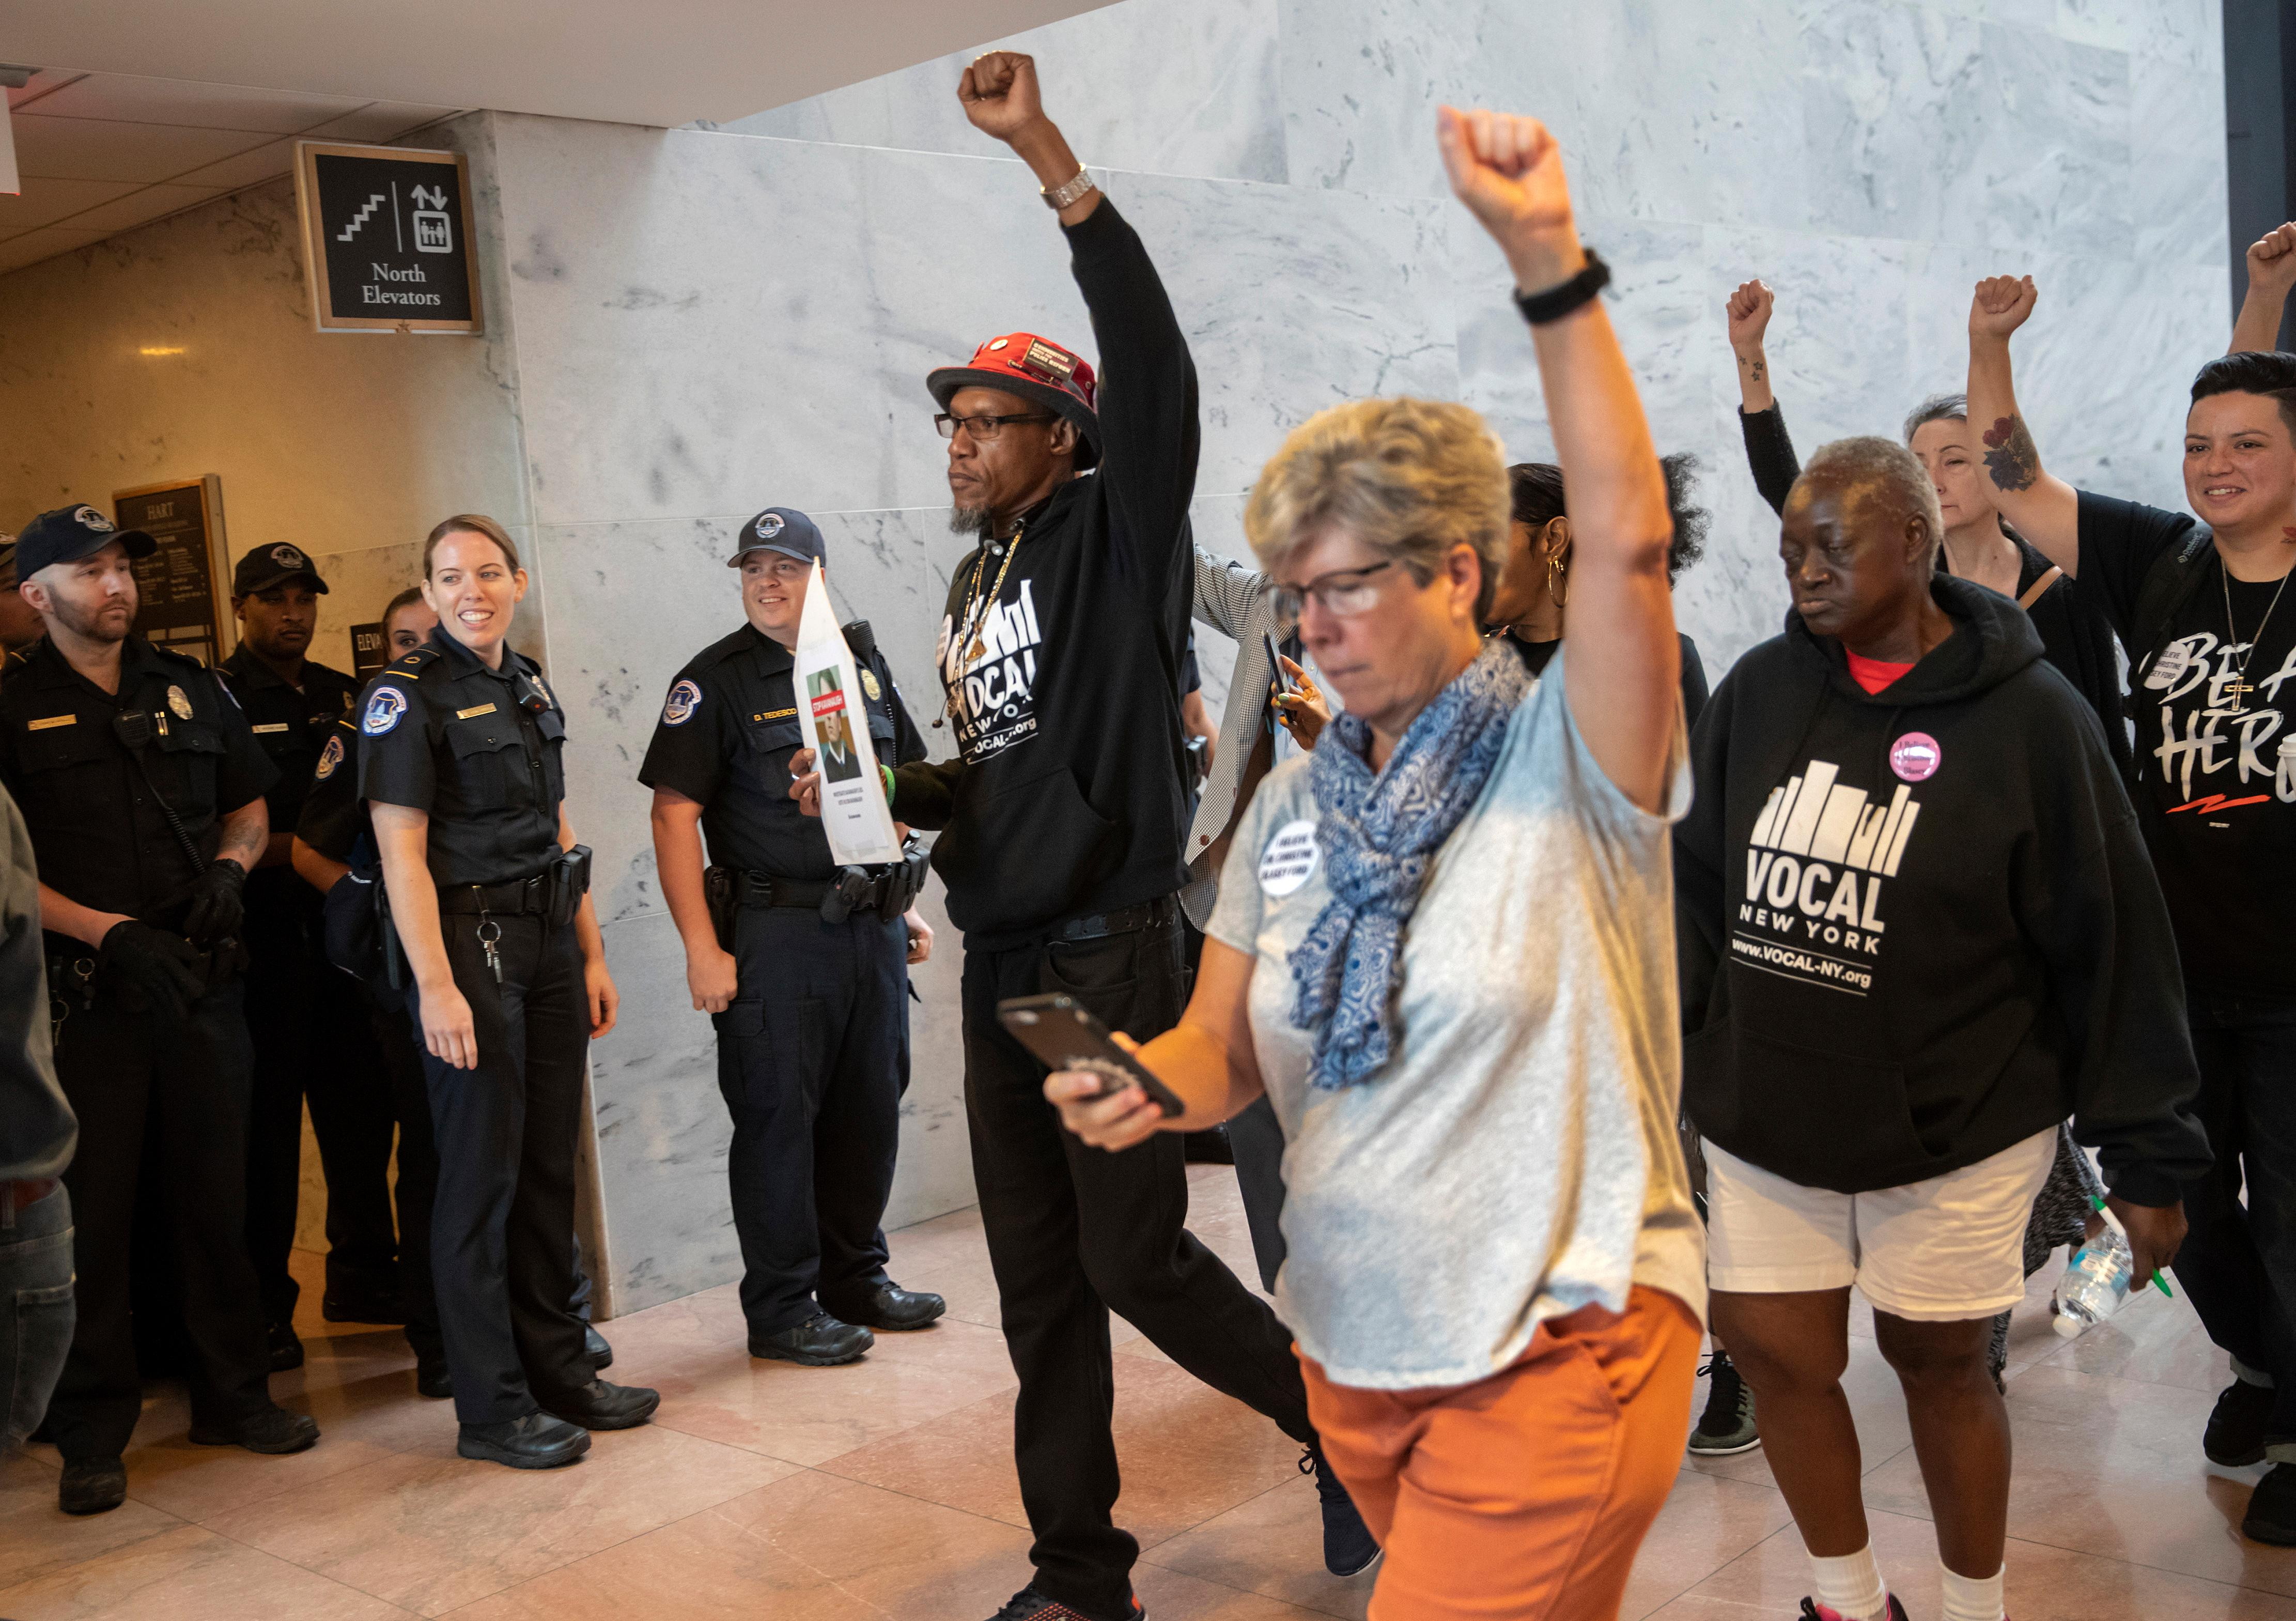 Protesters opposed to President Donald Trump's Supreme Court nominee, Brett Kavanaugh, demonstrate in the Hart Senate Office Building on Capitol Hill in Washington, Thursday, Sept. 20, 2018. (AP Photo/J. Scott Applewhite)